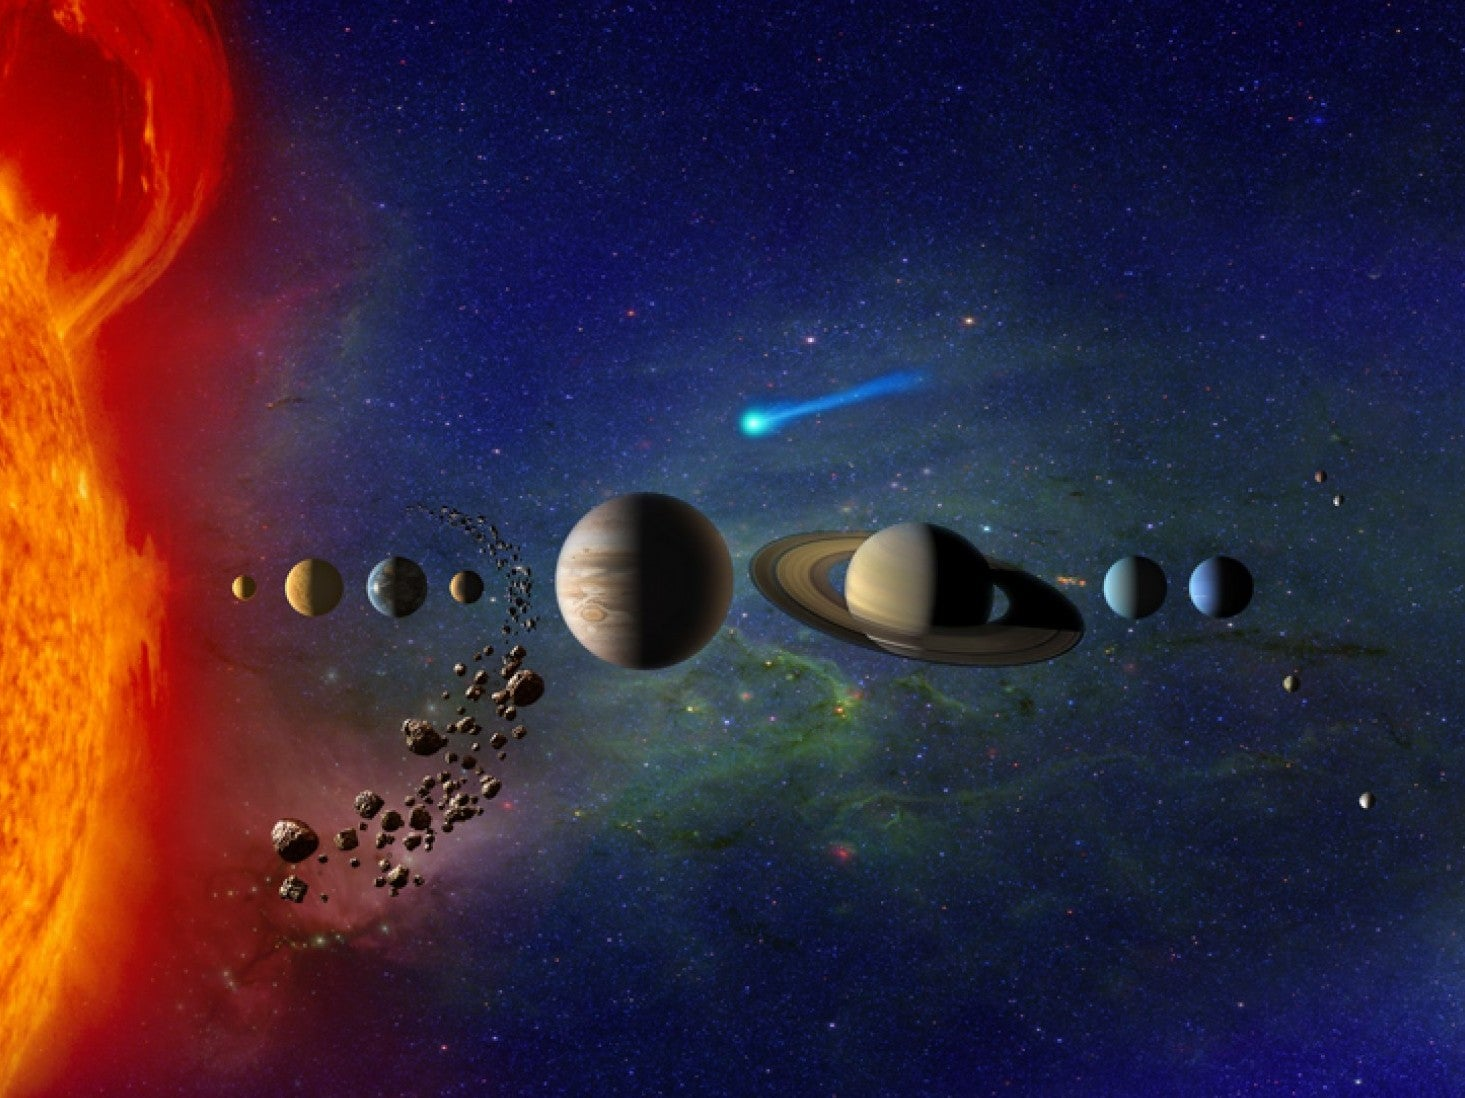 Nasa announcement today: 'Major' new mission to explore our solar system to be revealed